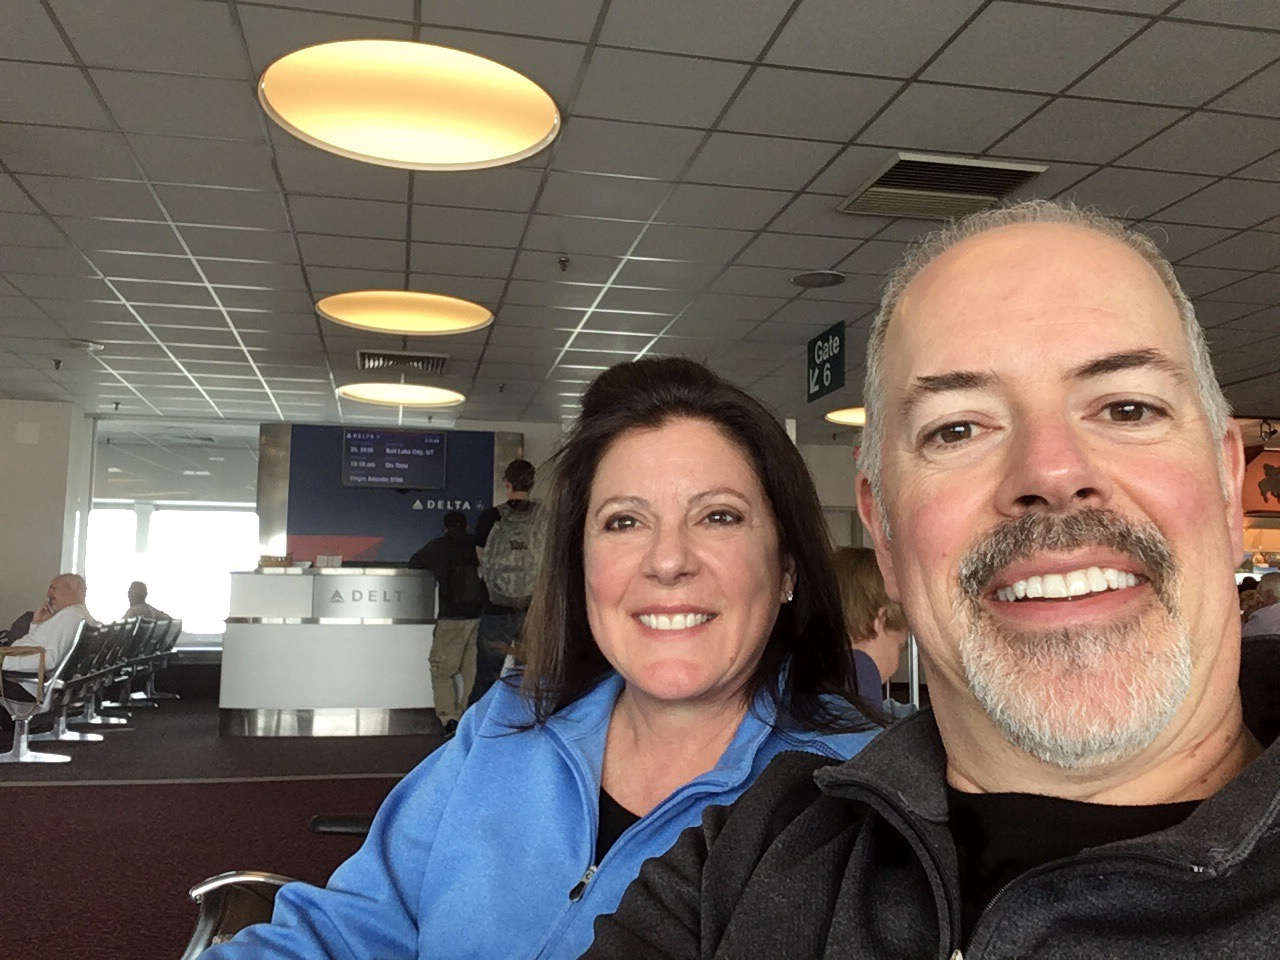 Diane and John Whittaker joining us from Coeur d'Alene, Idaho